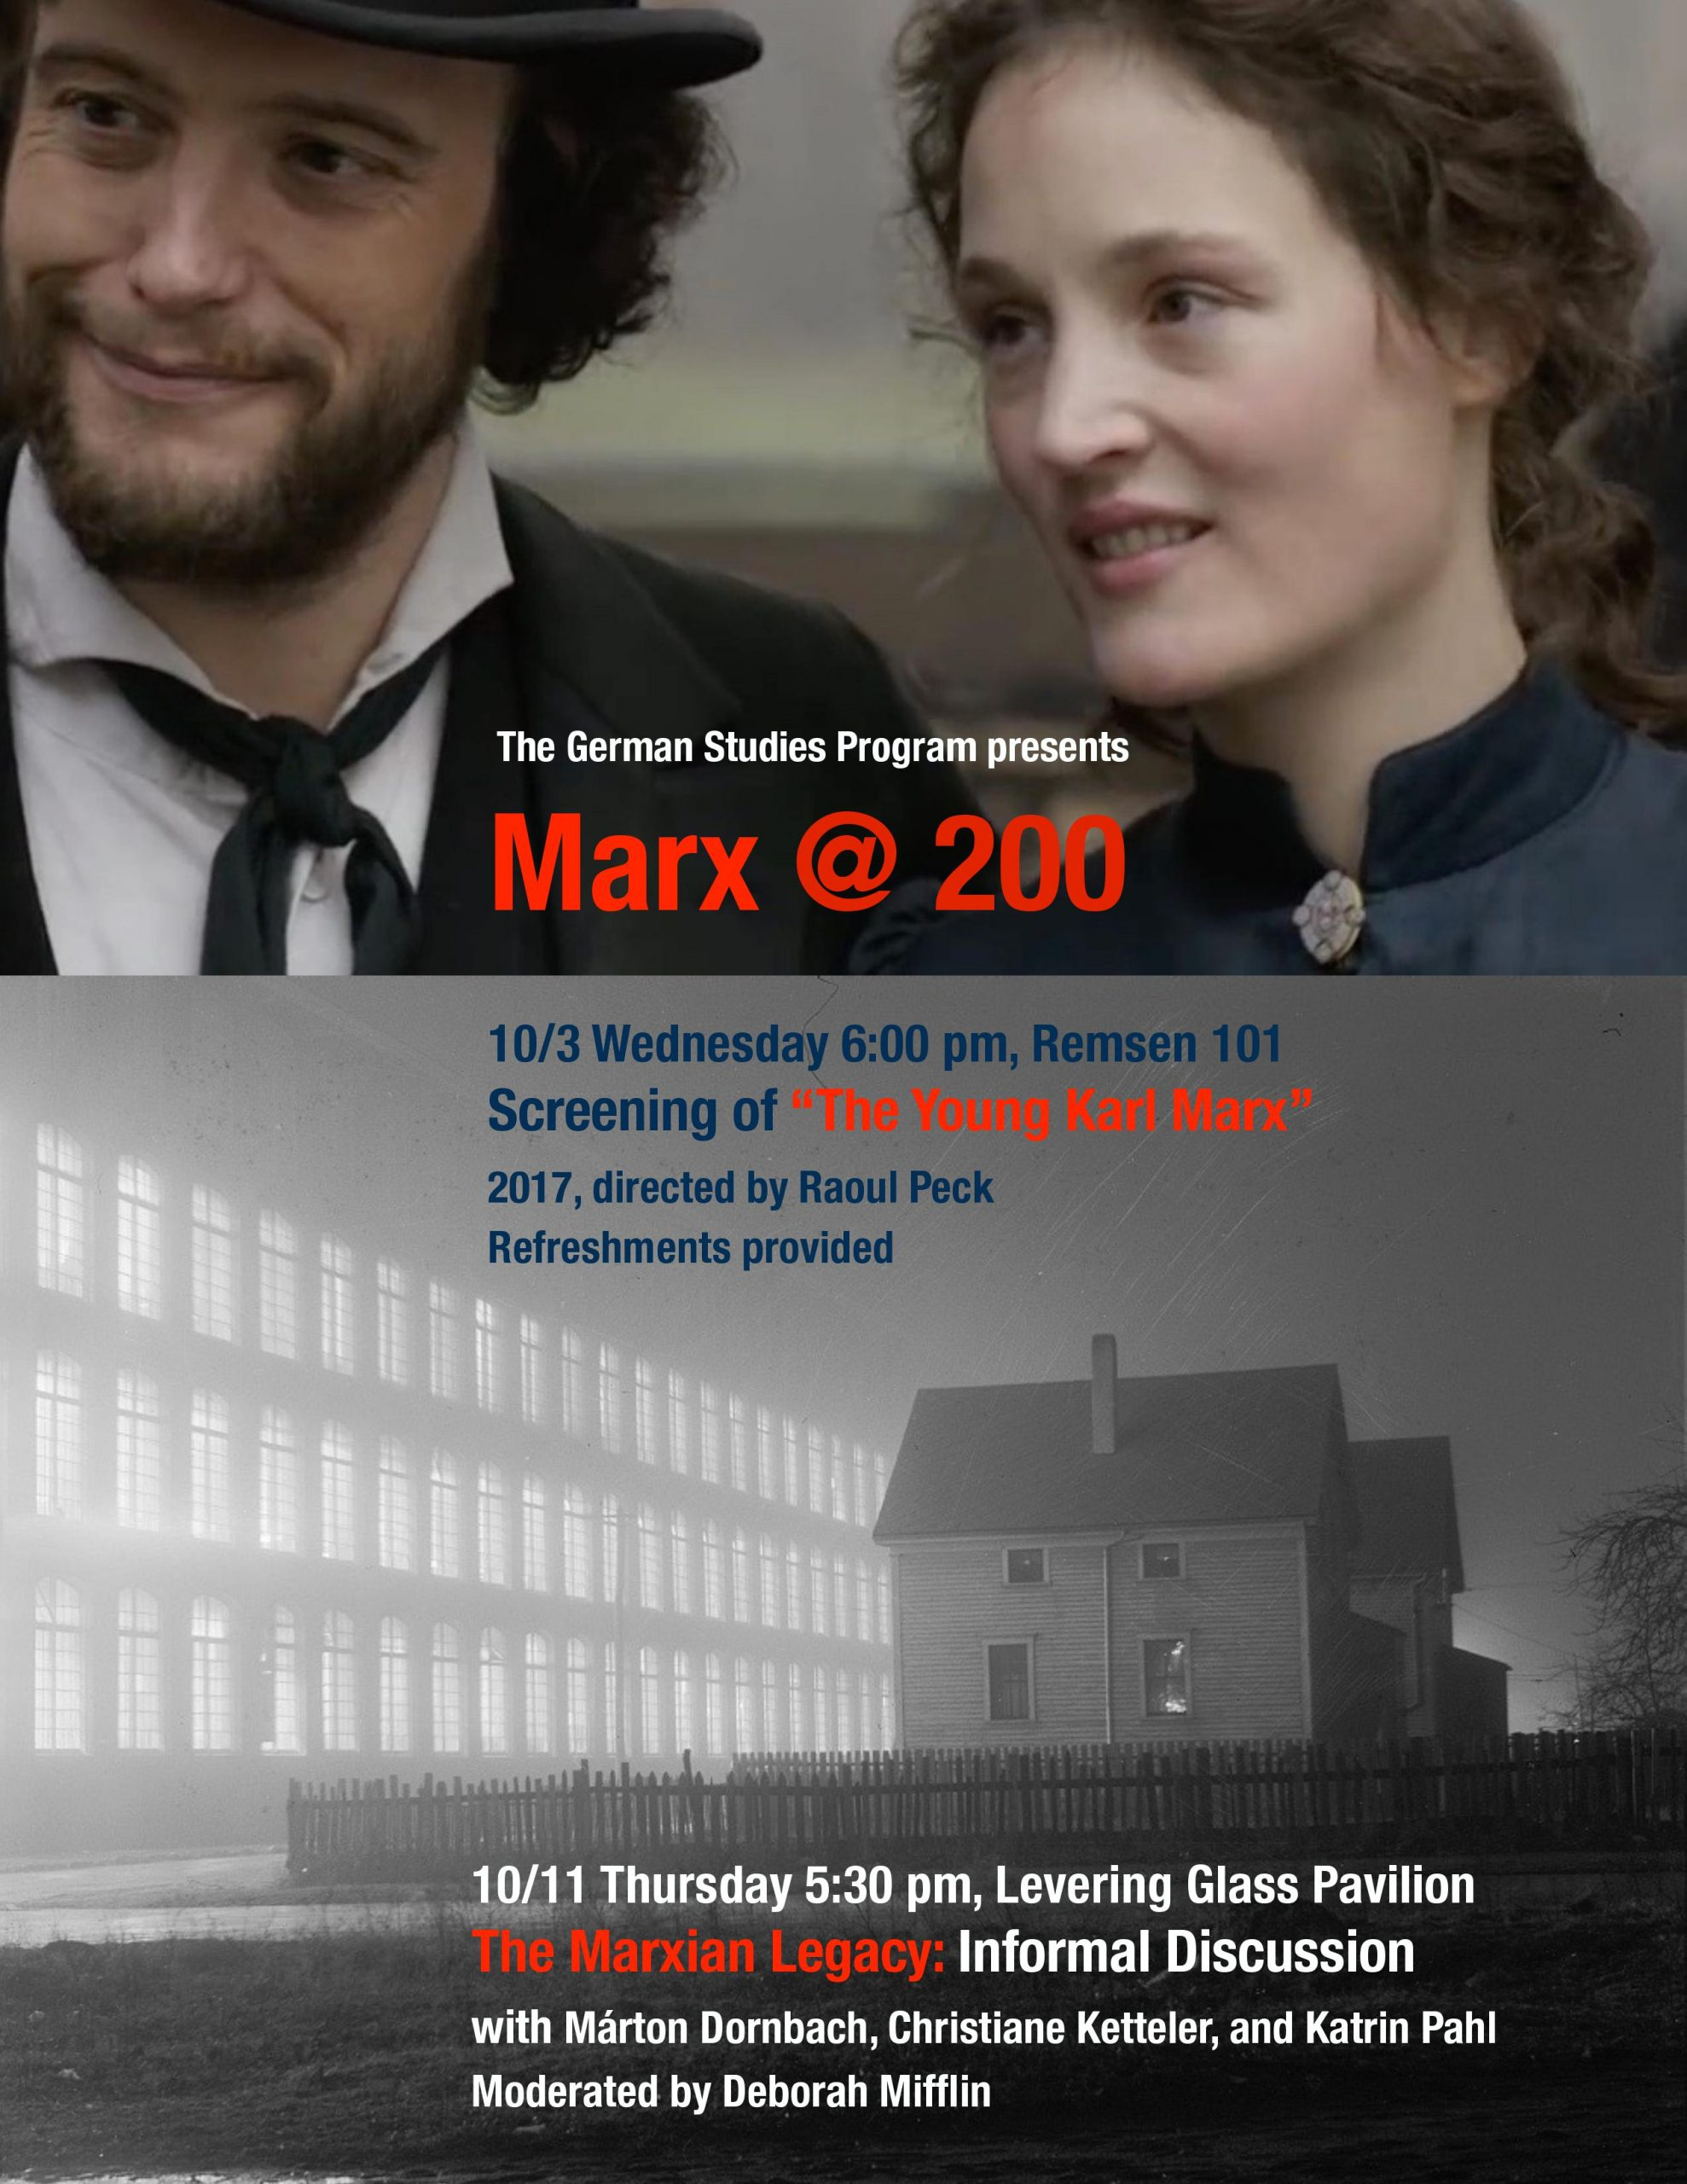 The German program is hosting two events related to the recent bicentenary of Karl Marx's birth